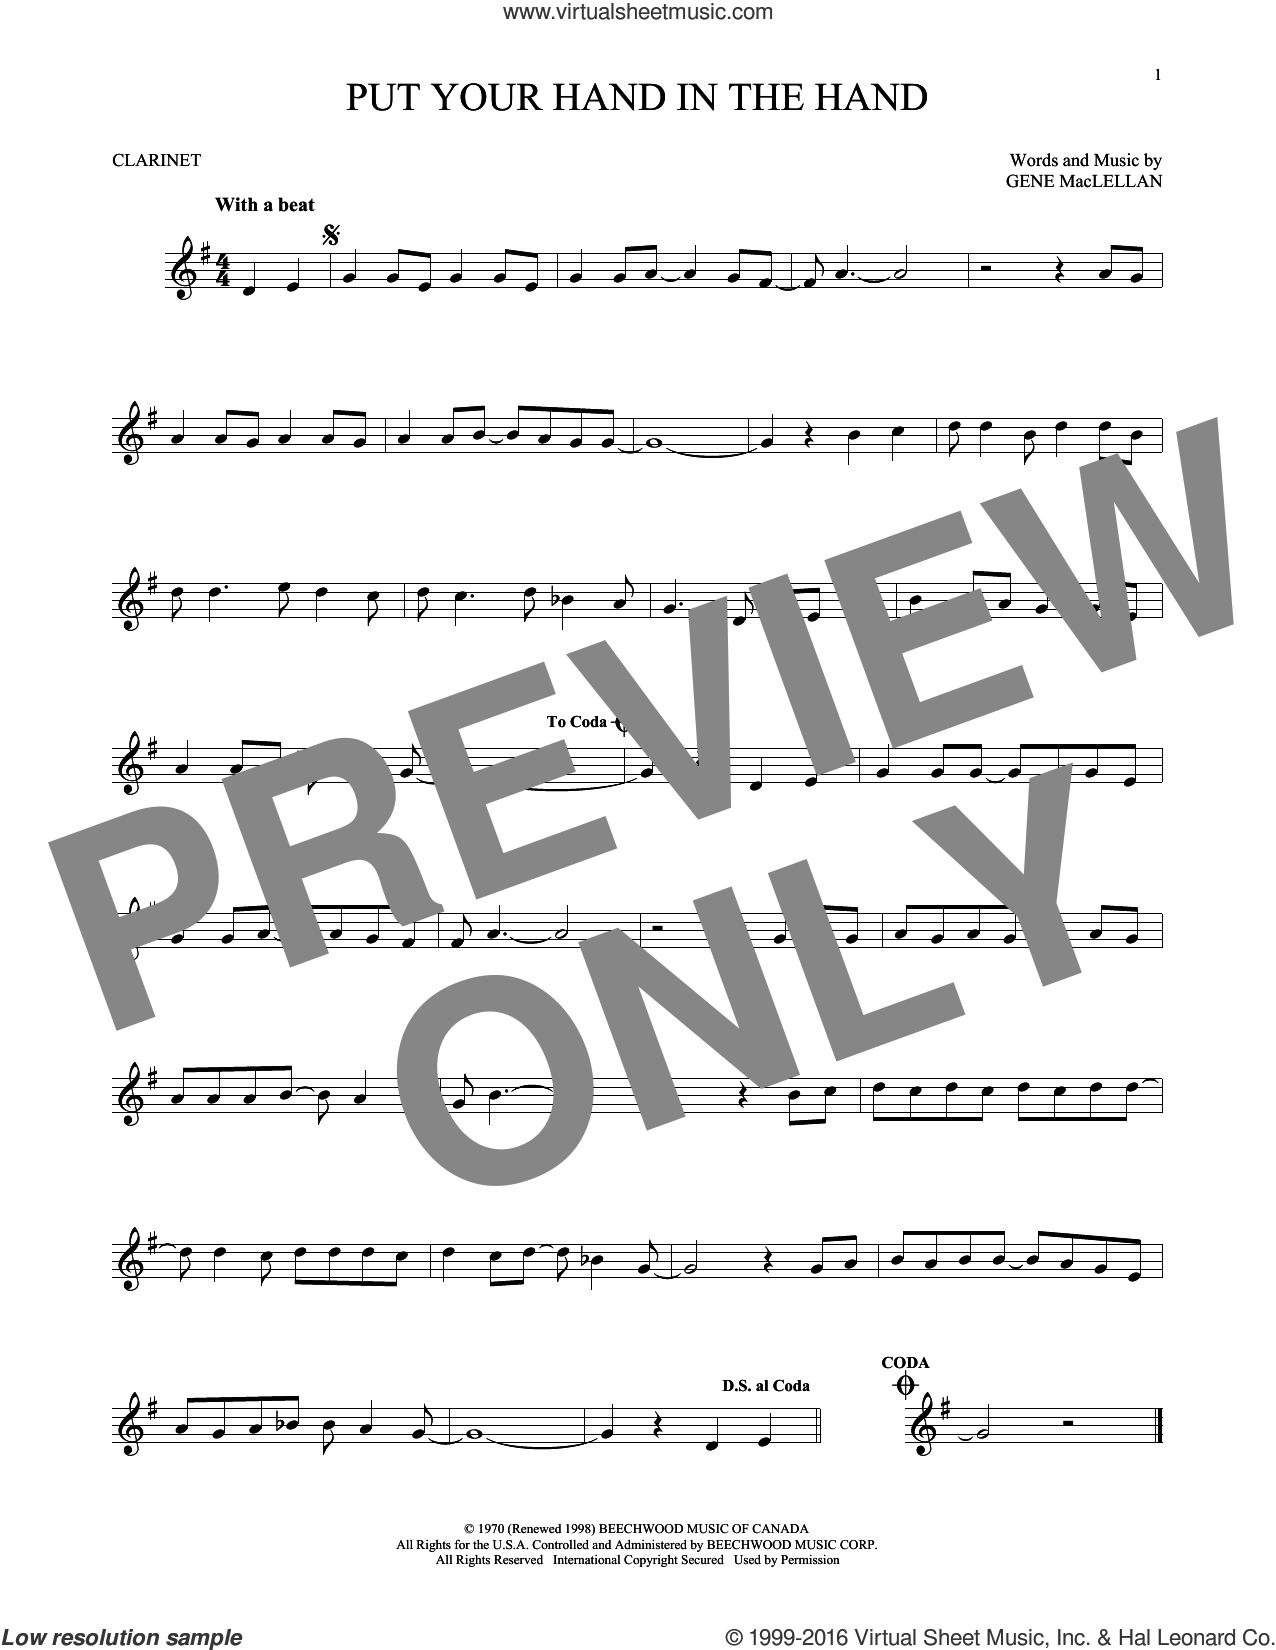 Put Your Hand In The Hand sheet music for clarinet solo by Gene MacLellan and MacLellan and Ocean, intermediate skill level